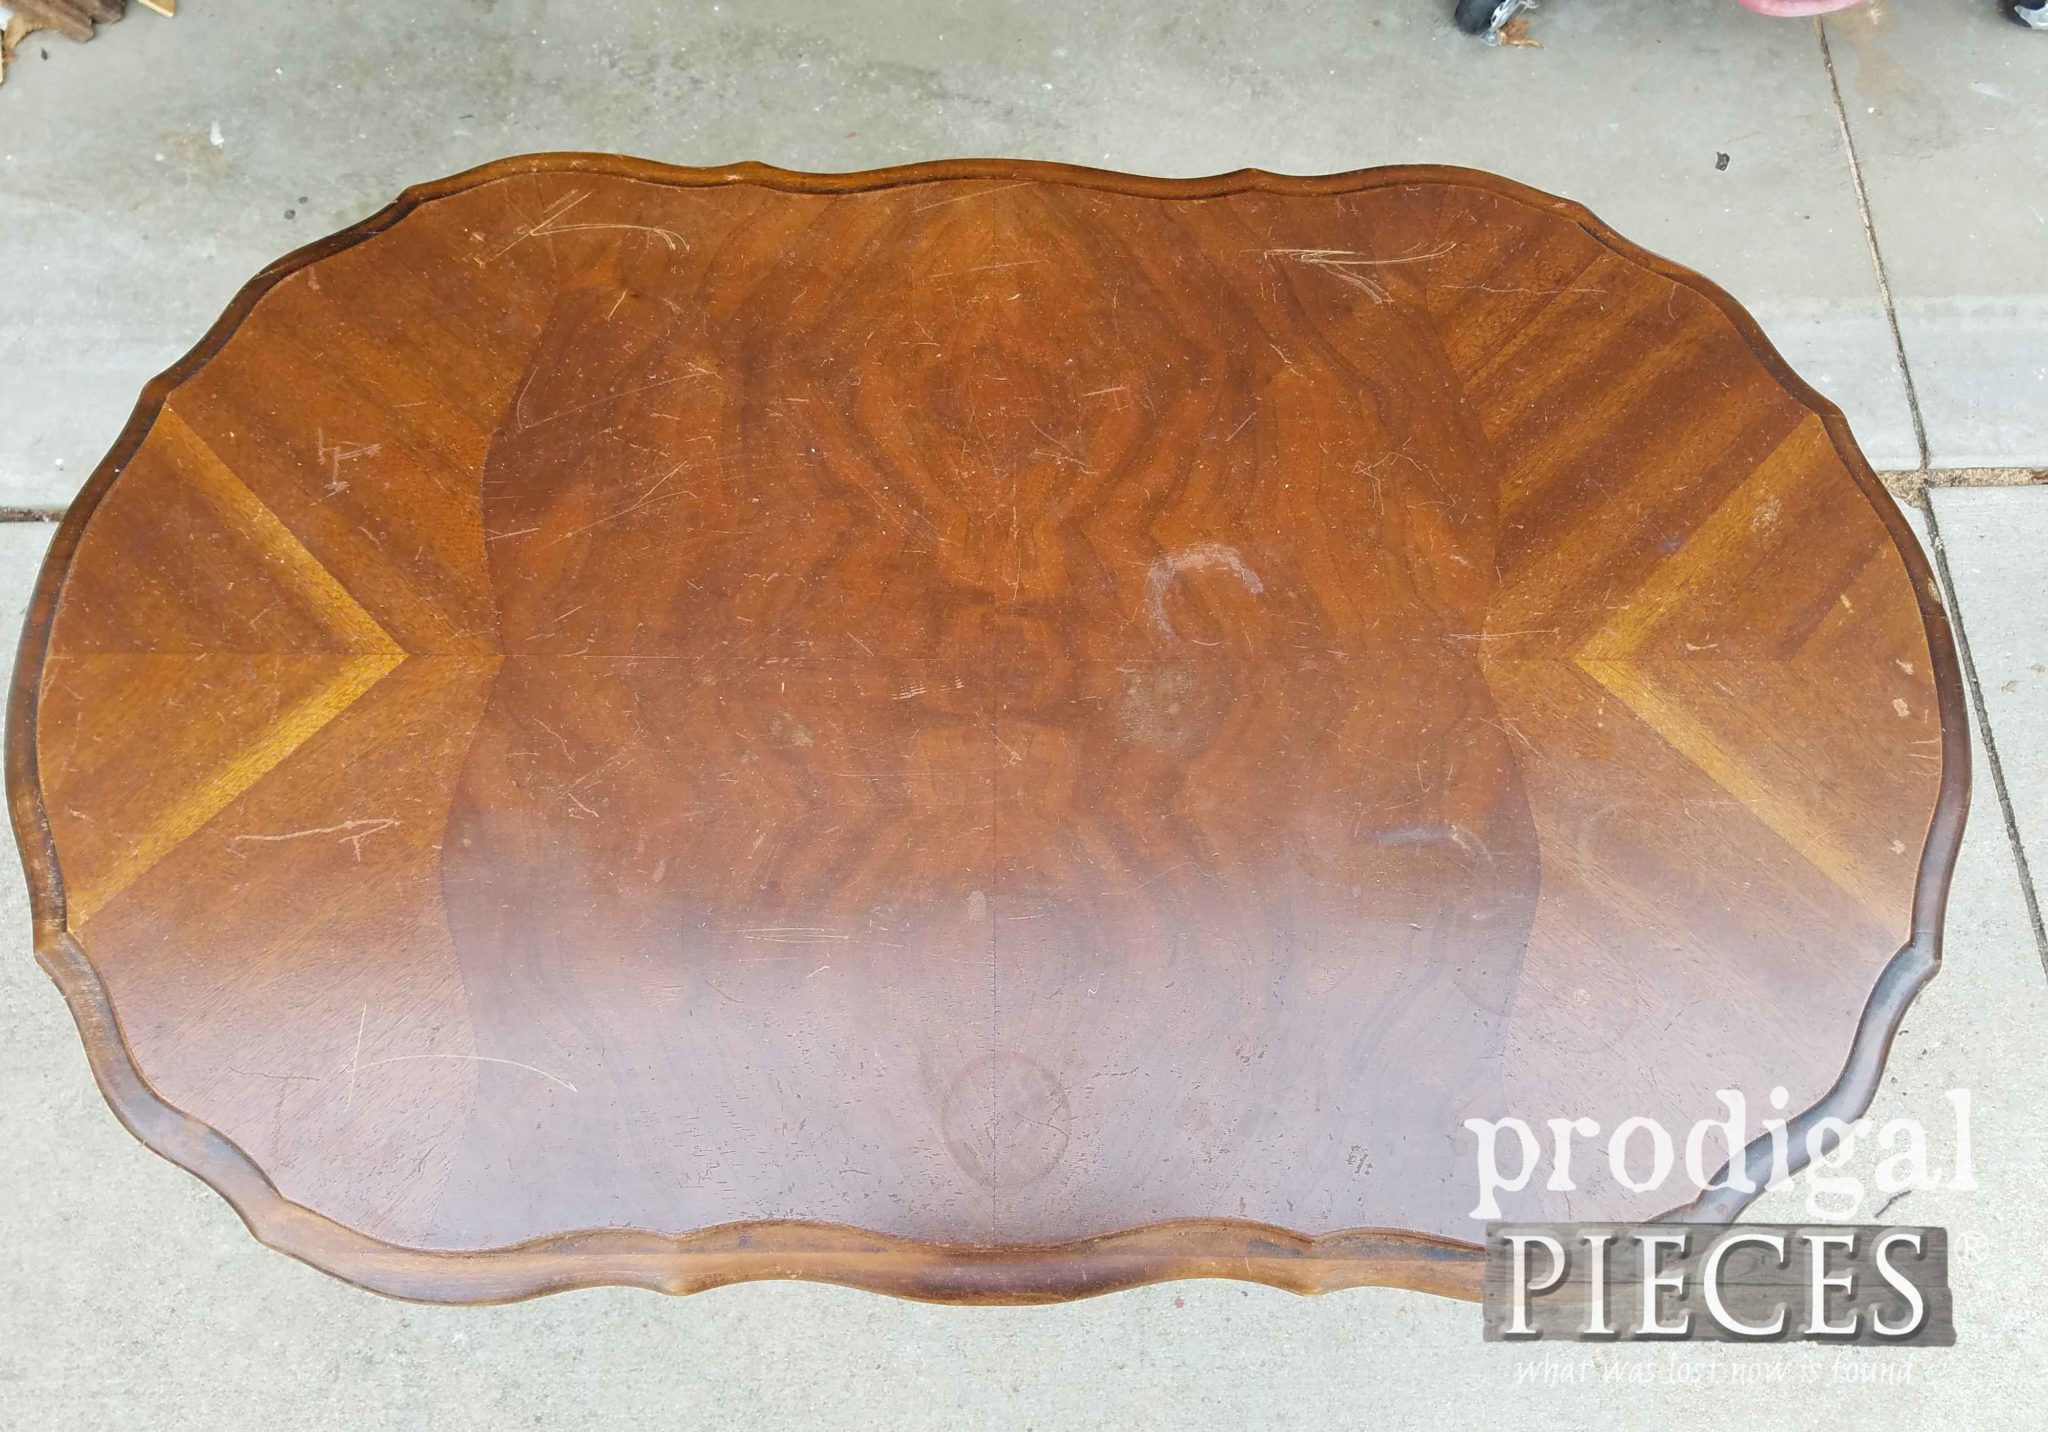 Antique Table Top in Need of Refinishing | prodigalpieces.com